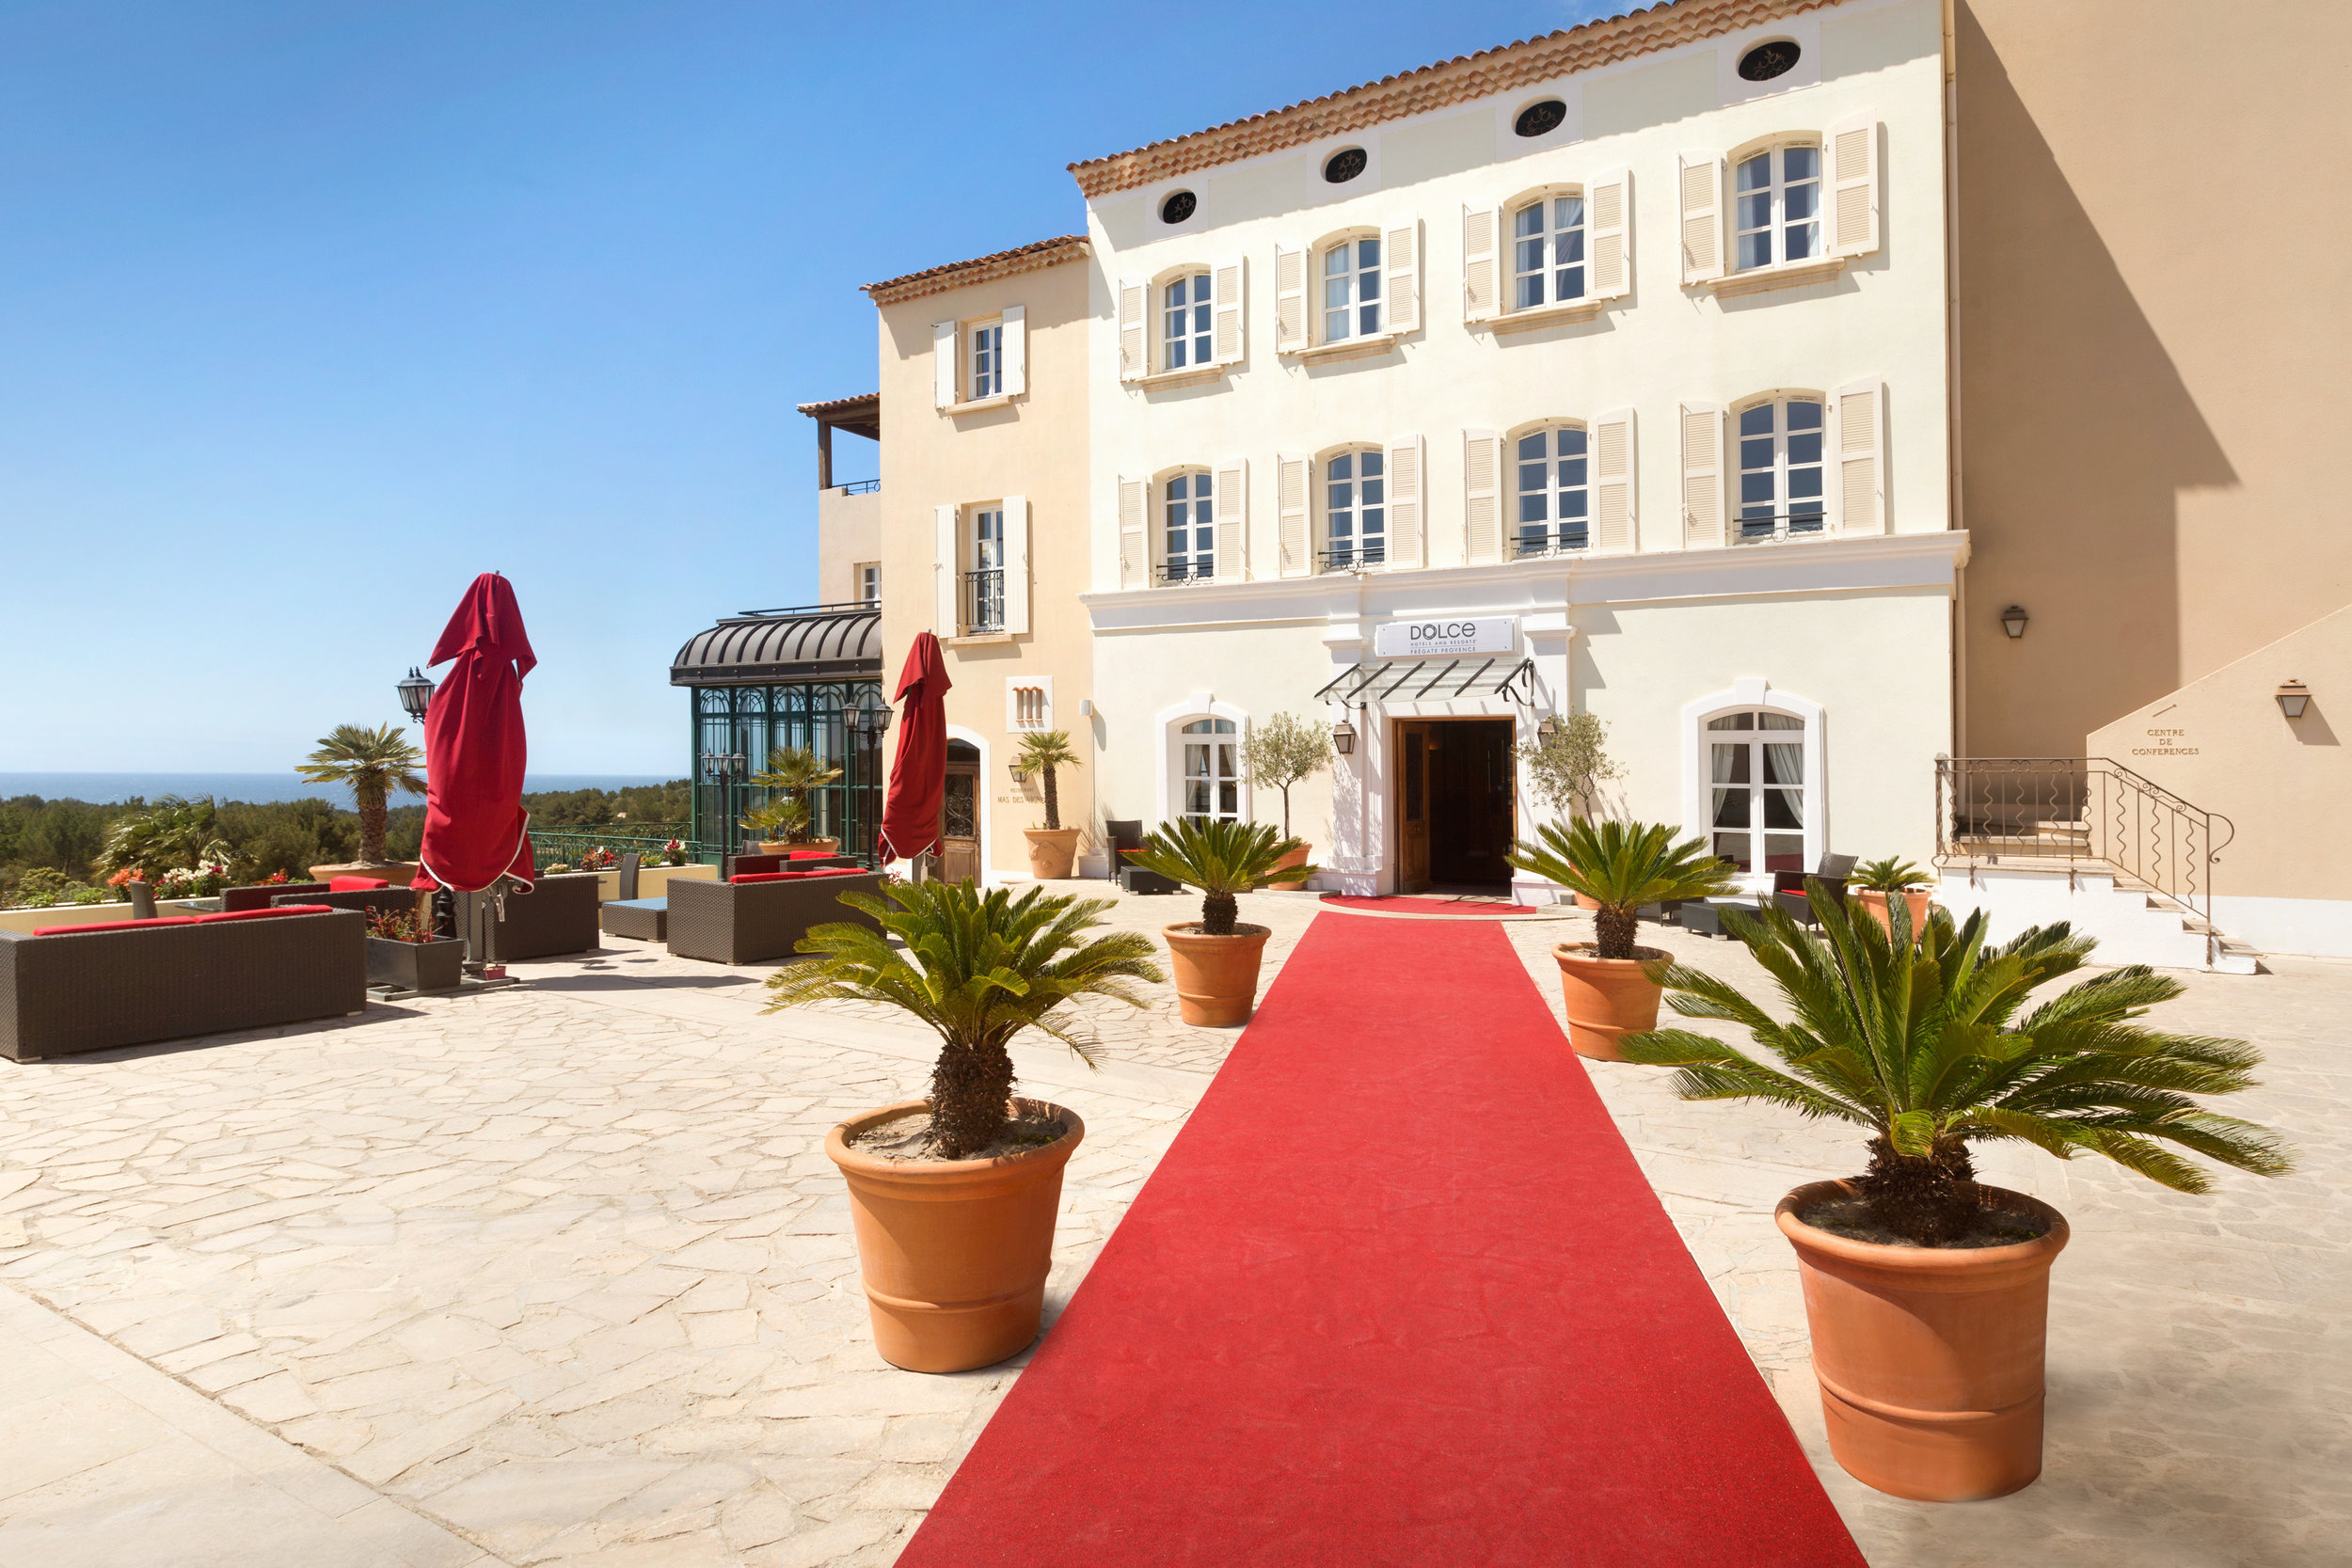 Dolce Fregate Provence - Entrance of the Hotel - Plazza - 1129275.jpg